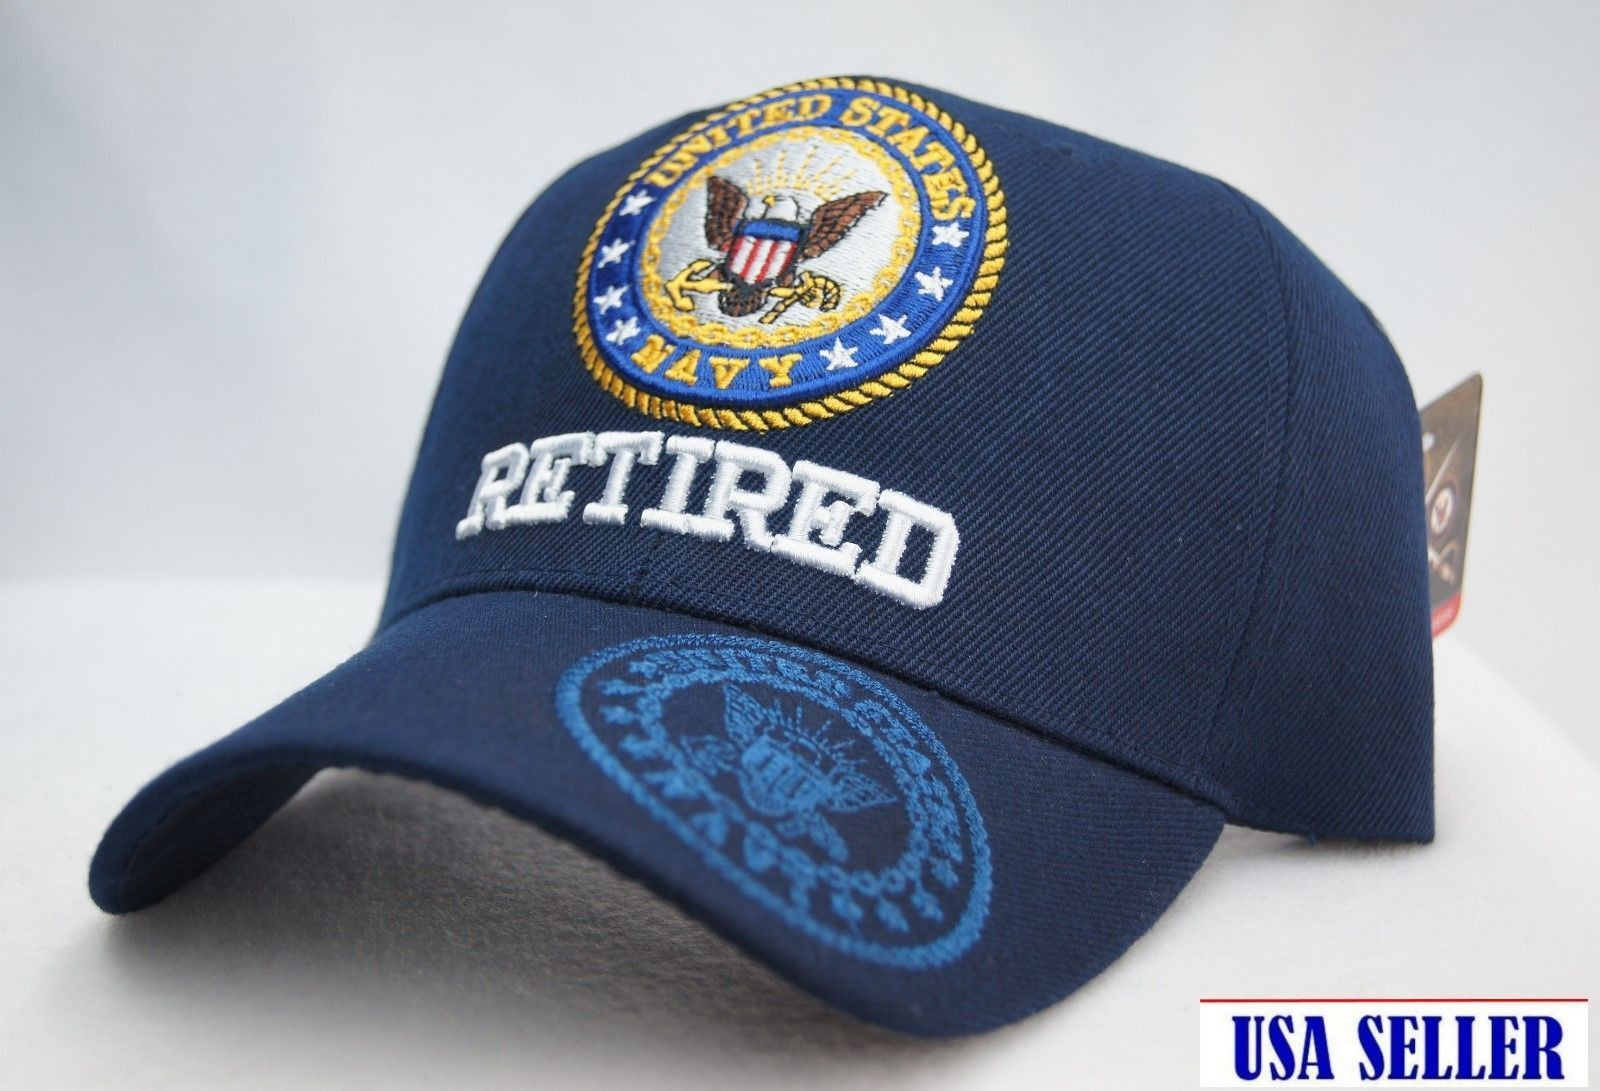 ff1ecc017d47f Licensed UNITED STATES NAVY RETIRED Cap 3D EMBROIDERY NWT NAVY BLUE COLOR